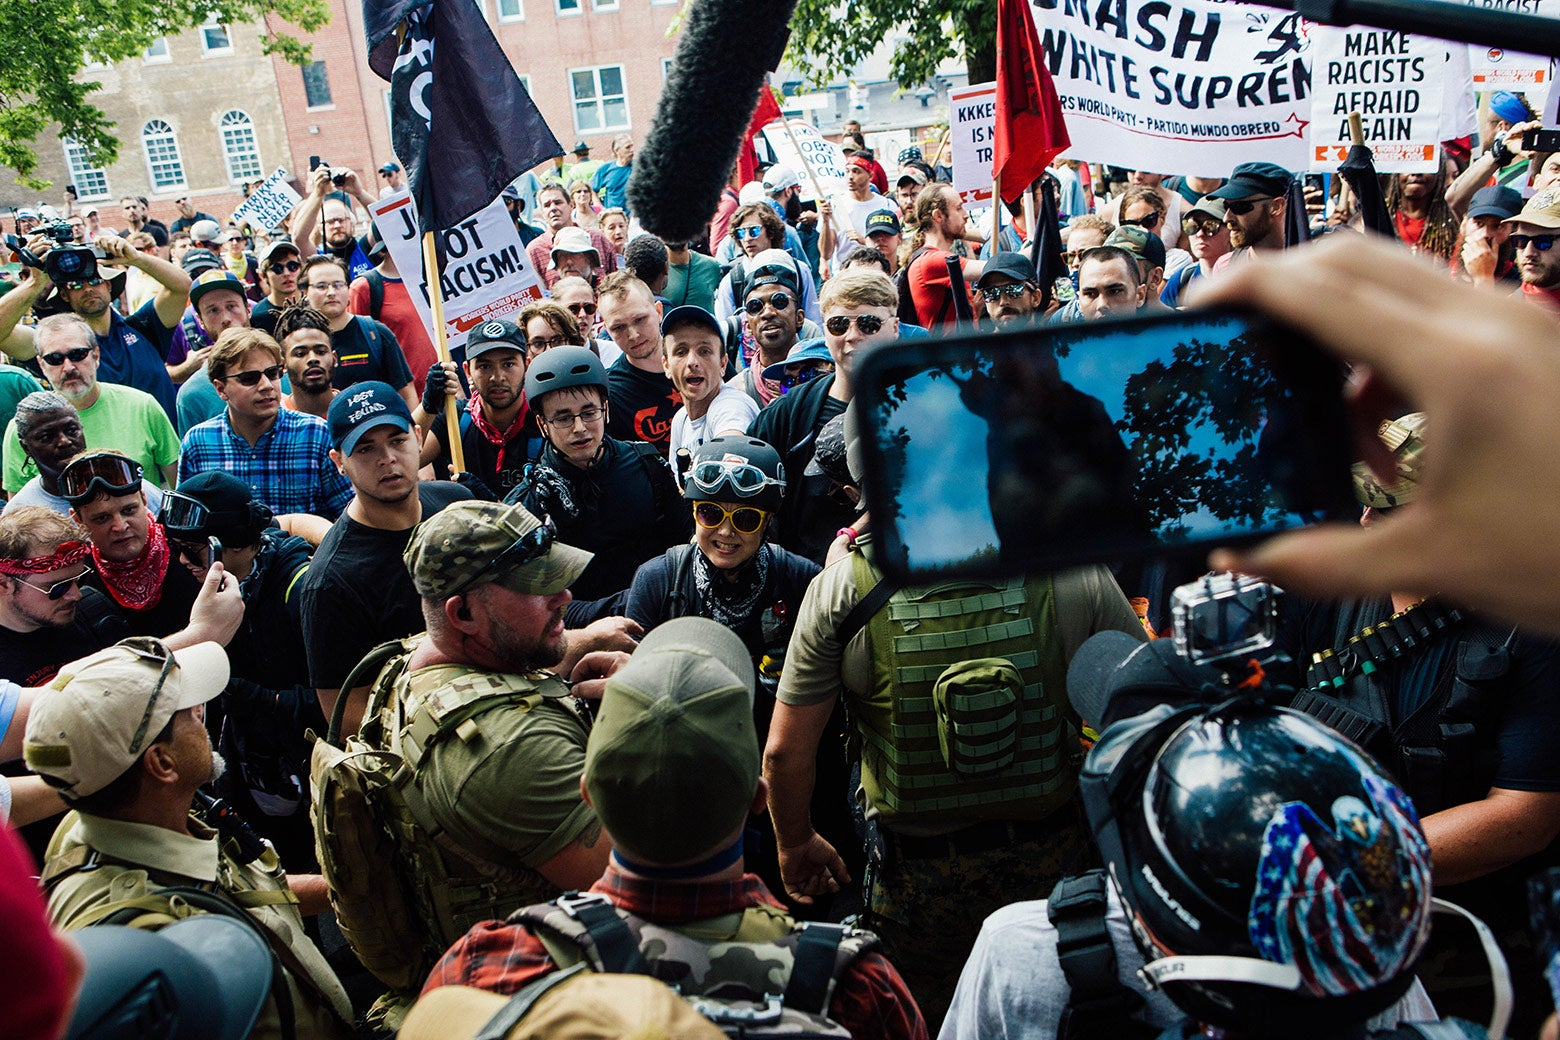 A diverse group of counterprotesters argues with protesters in military gear.